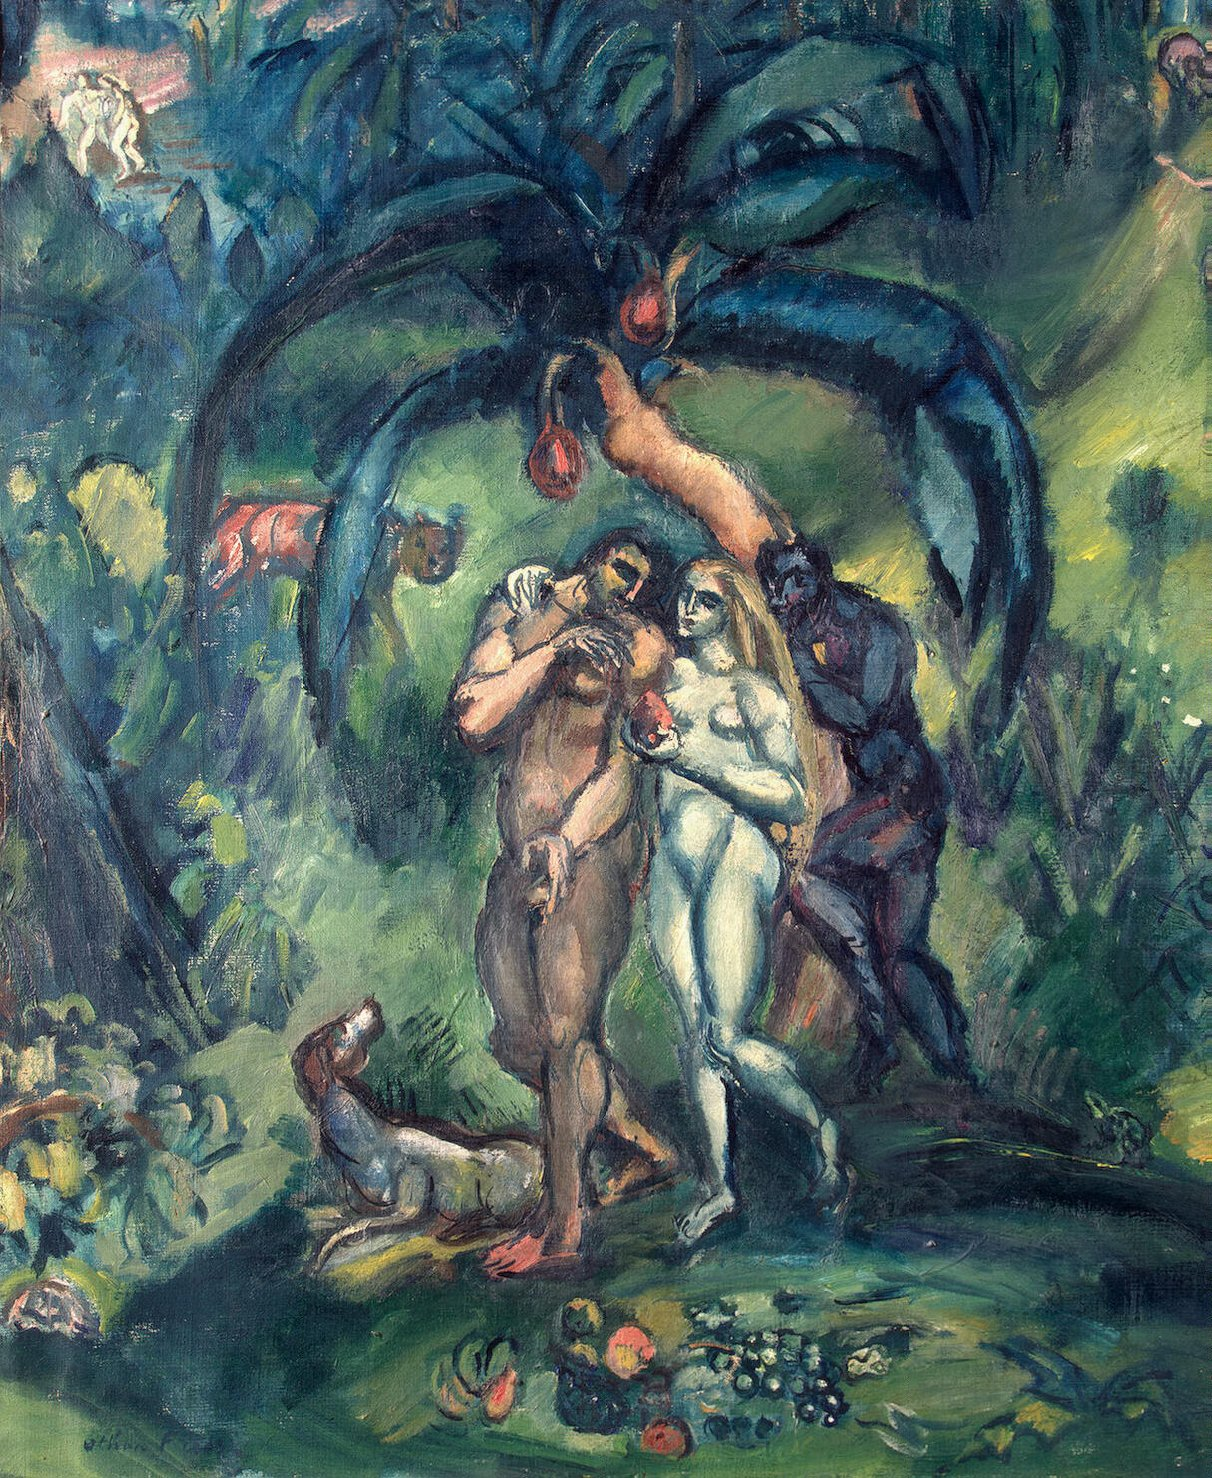 The temptation of Adam and Eve painting